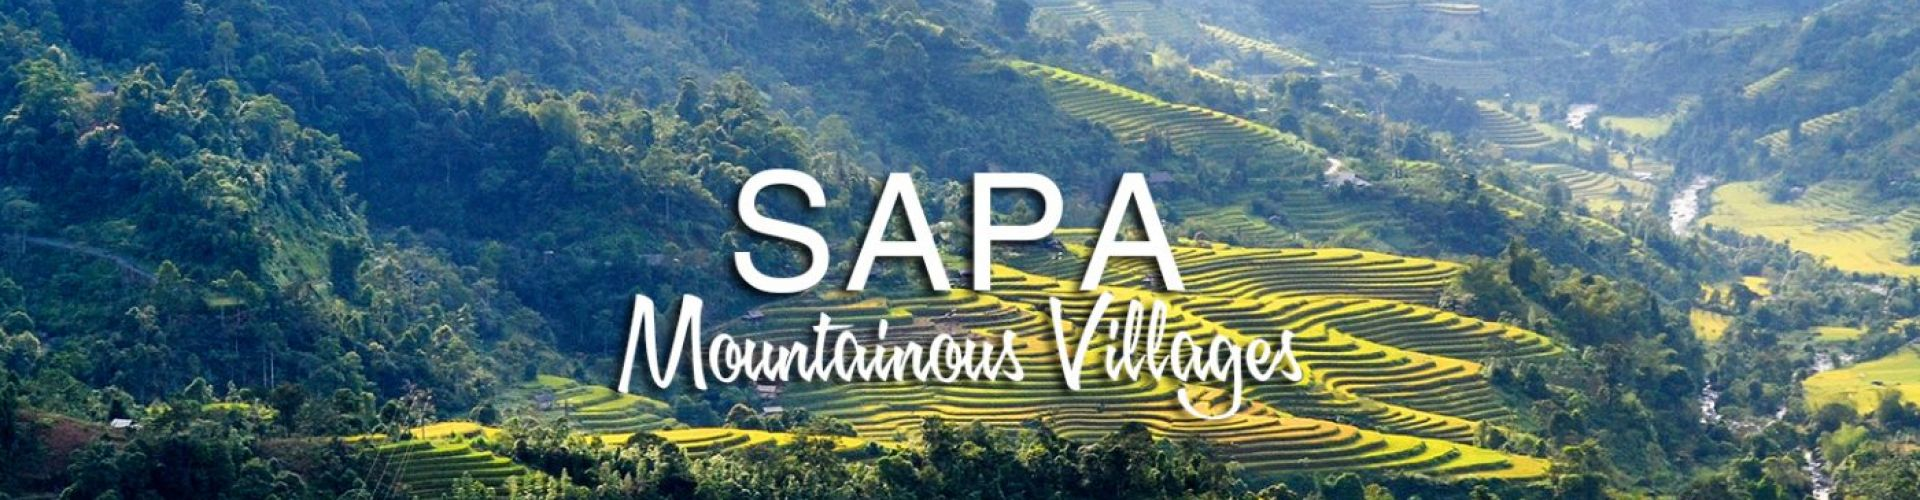 Destinations in Sapa